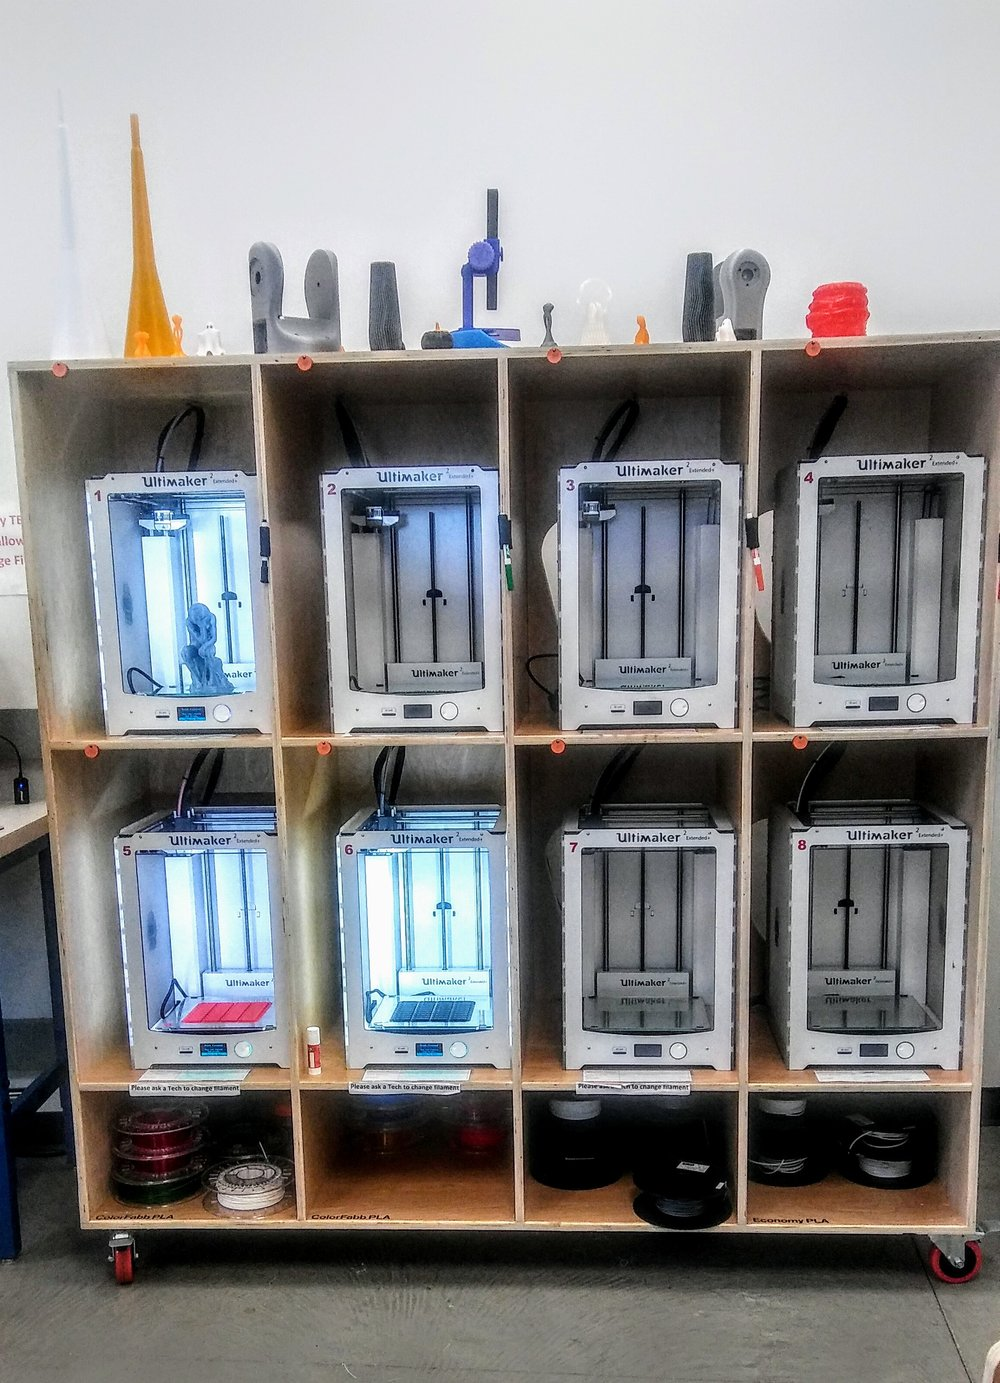 The wall of 3d printers!